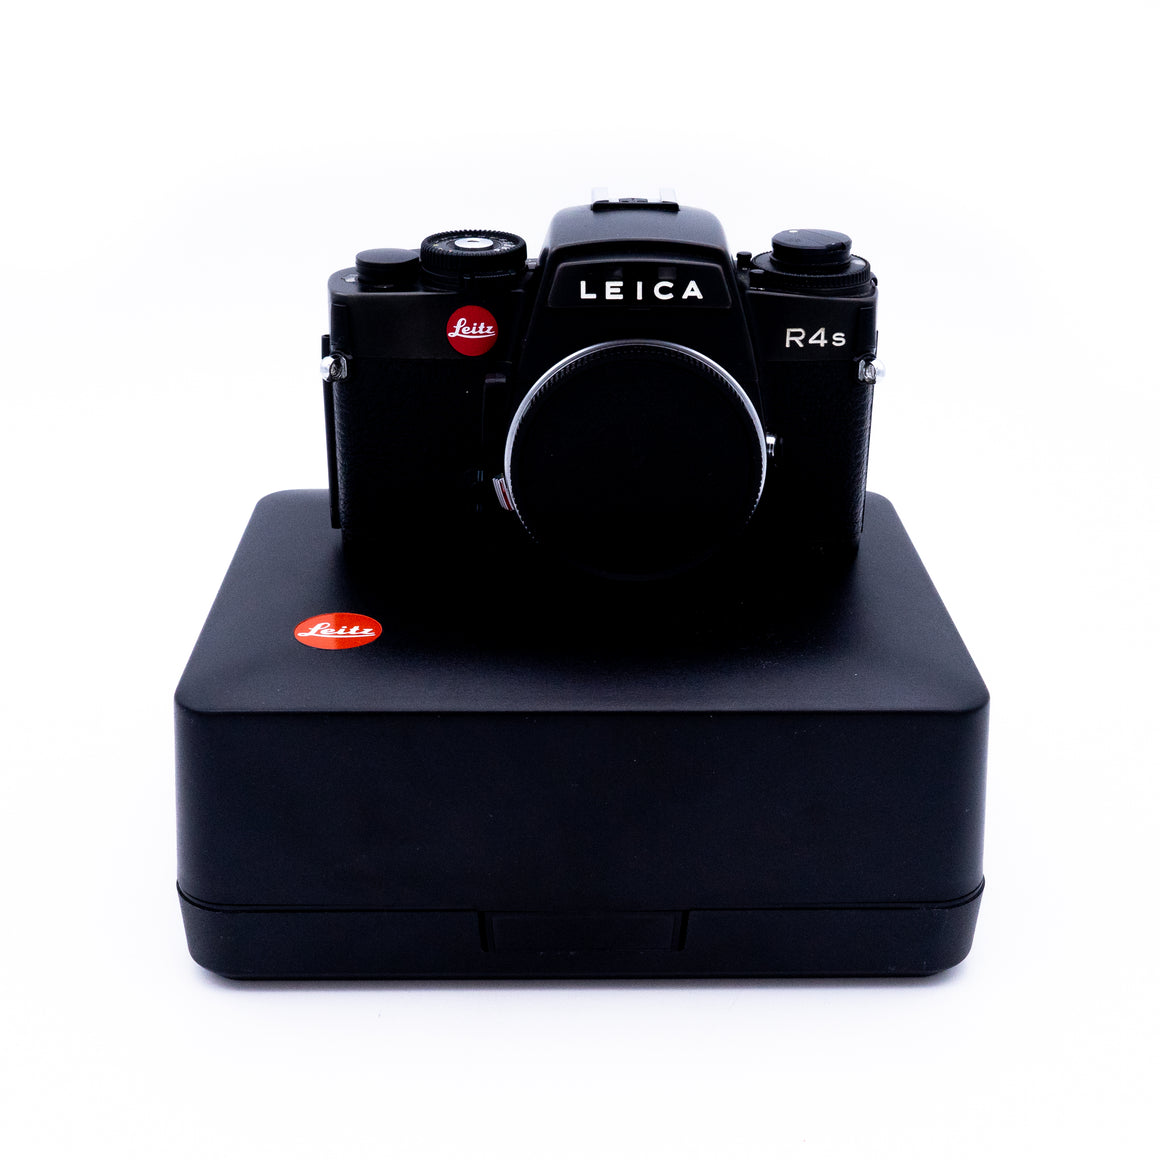 Leica R4s SLR Camera - Body Only